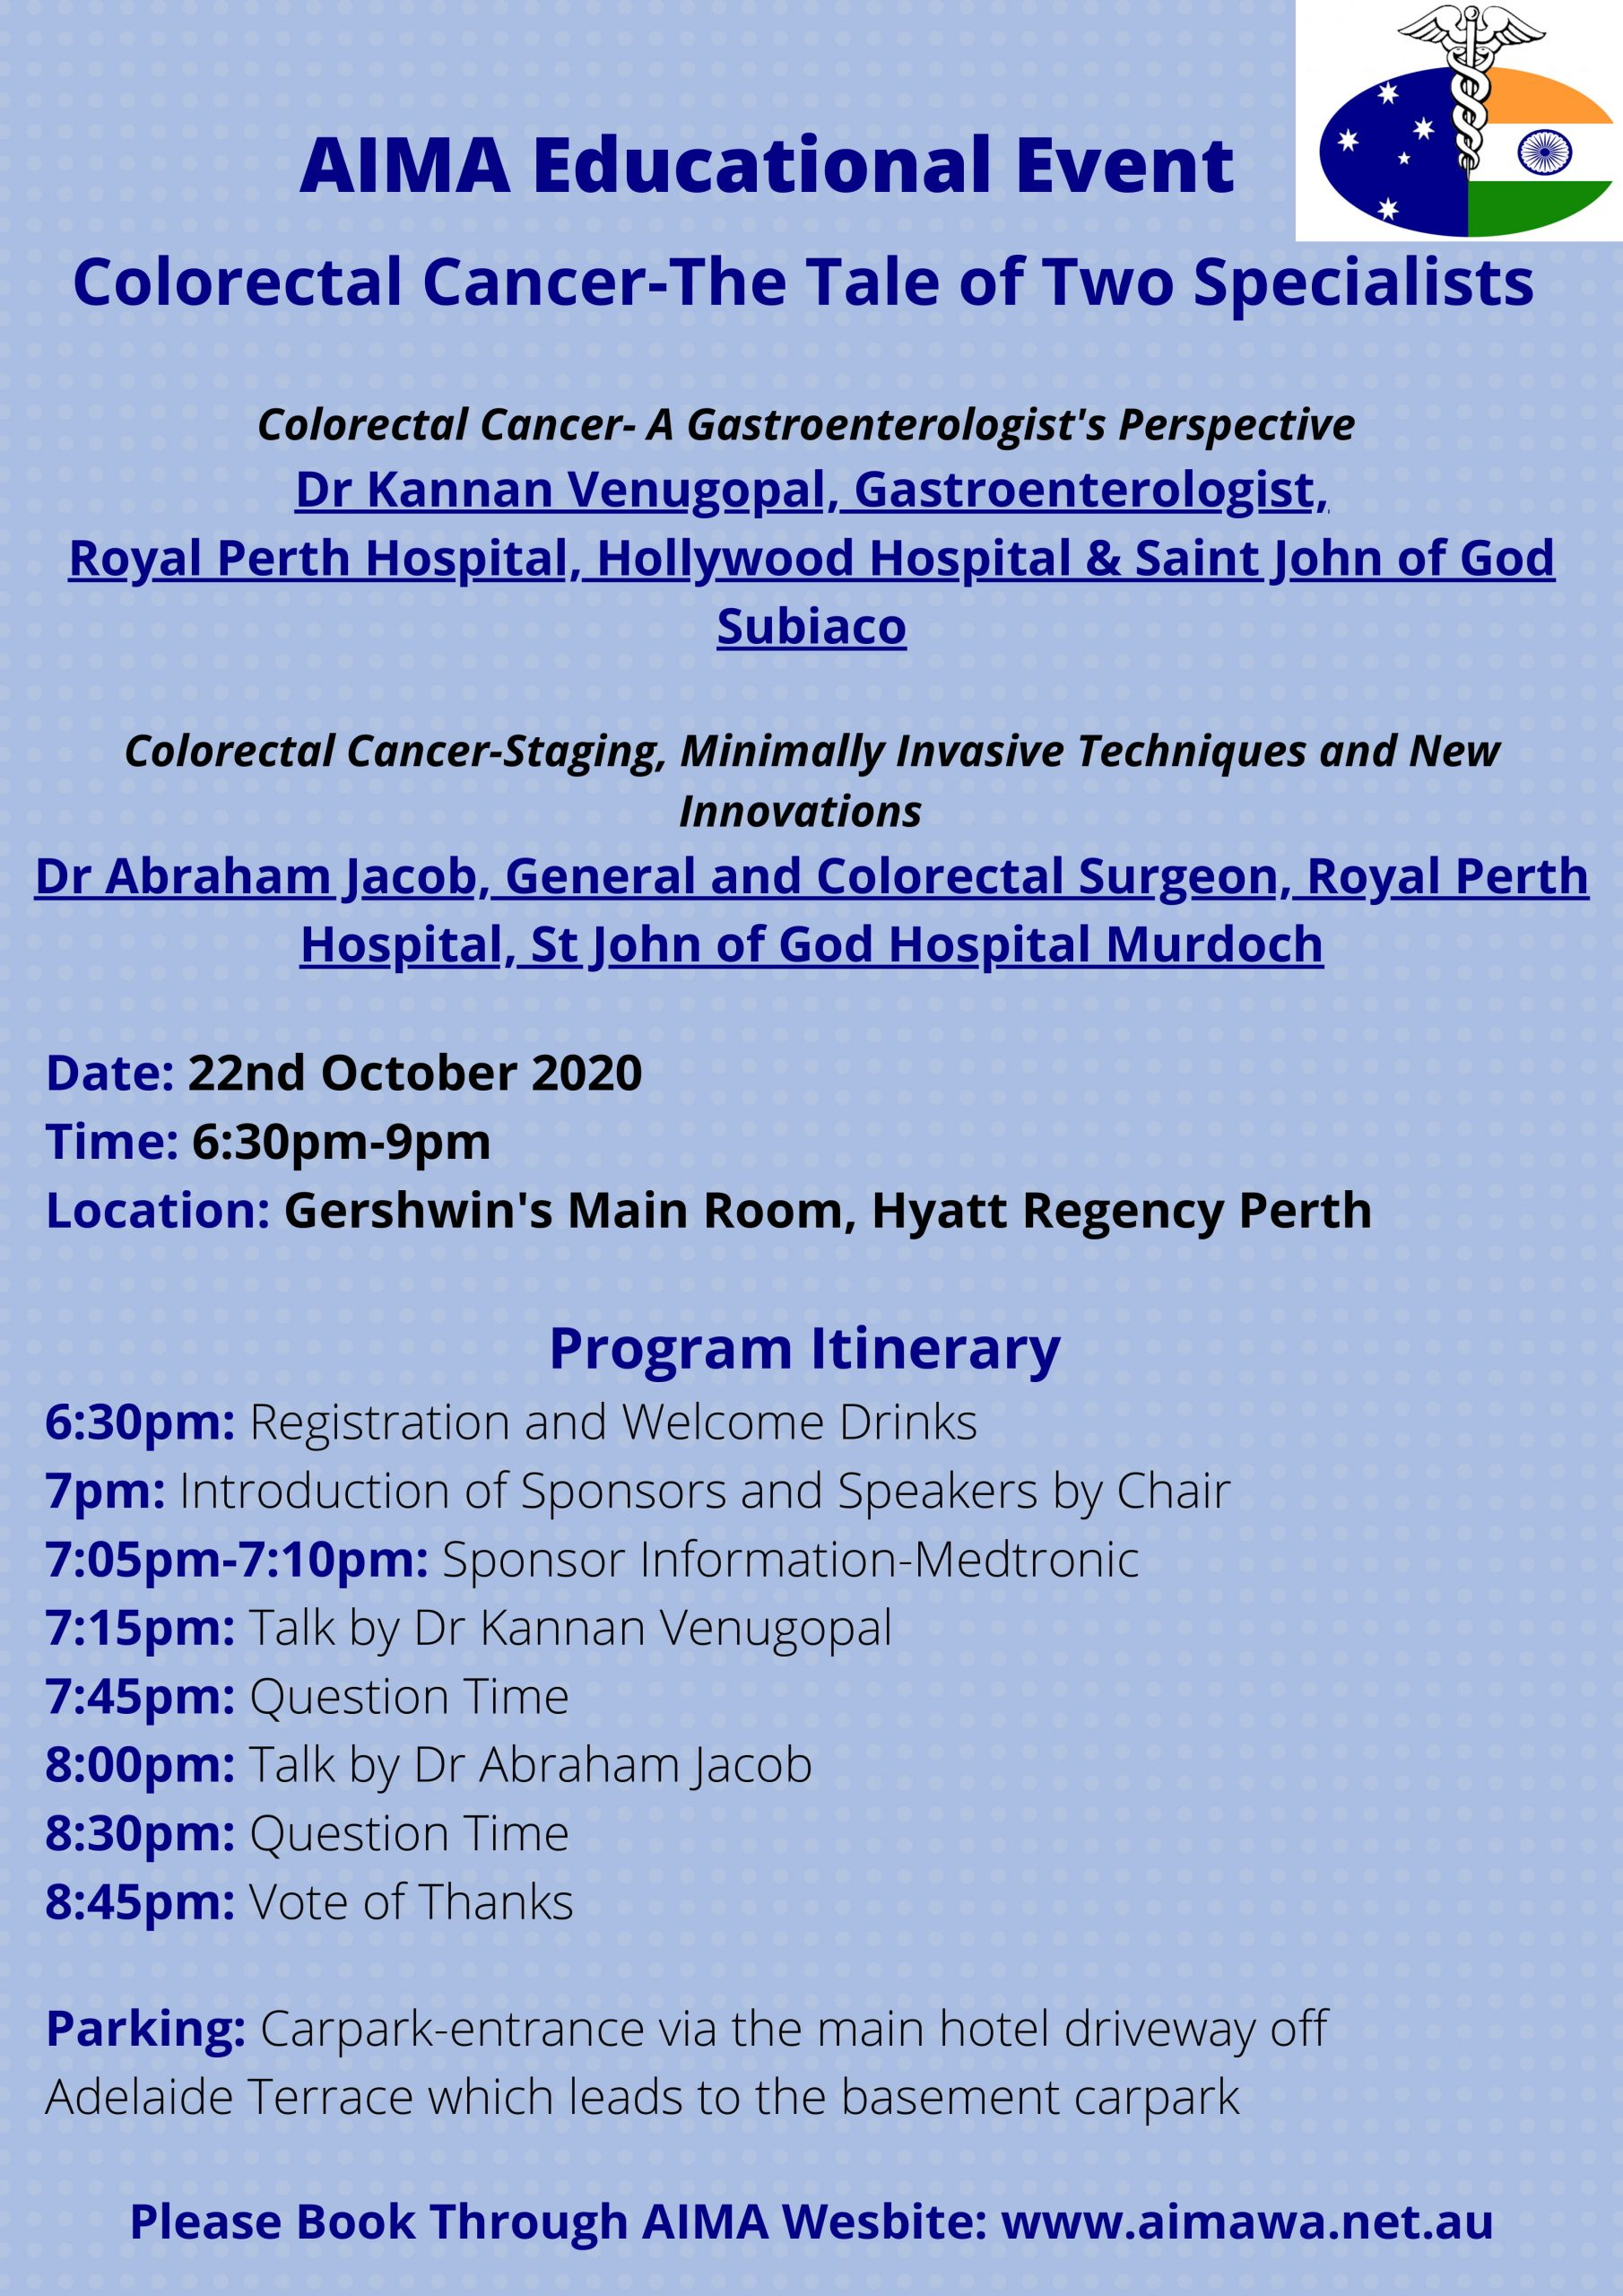 AIMA Educational Event  <strong>Colorectal Cancer-The Tale of Two Specialists</strong>